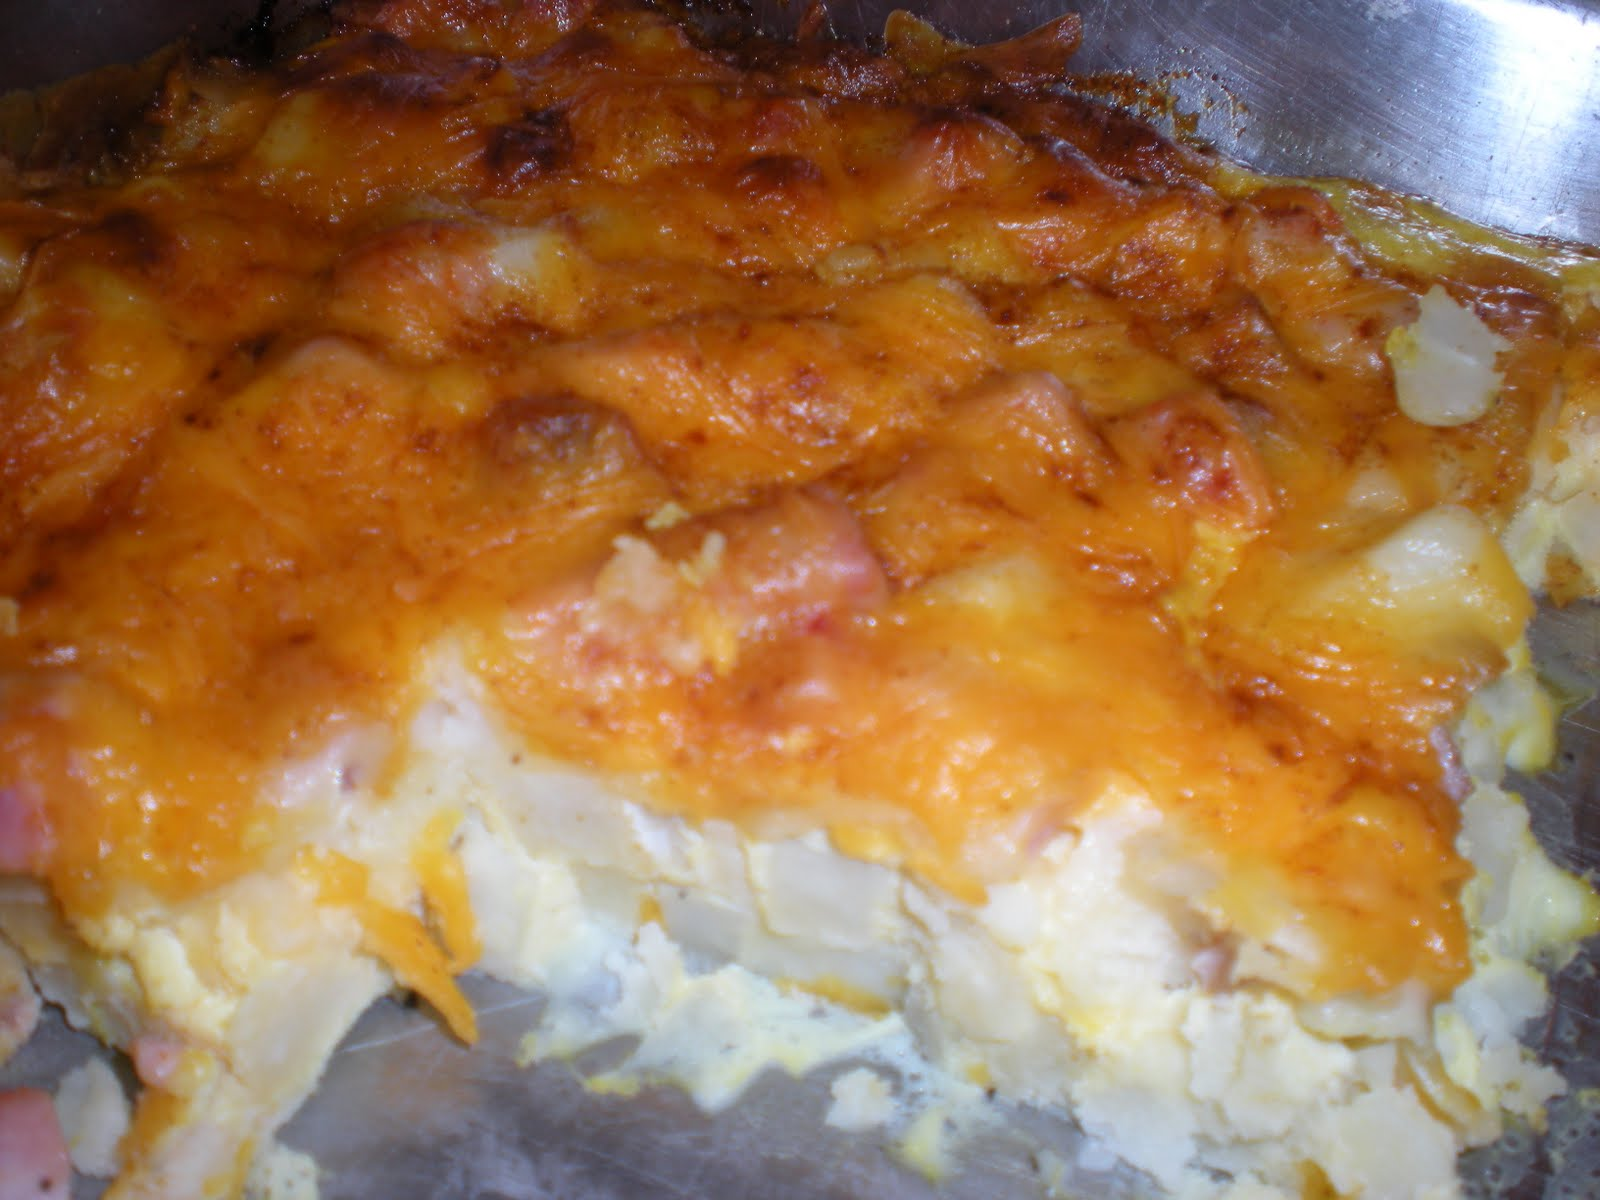 Fantastic Food: Breakfast Potato Casserole